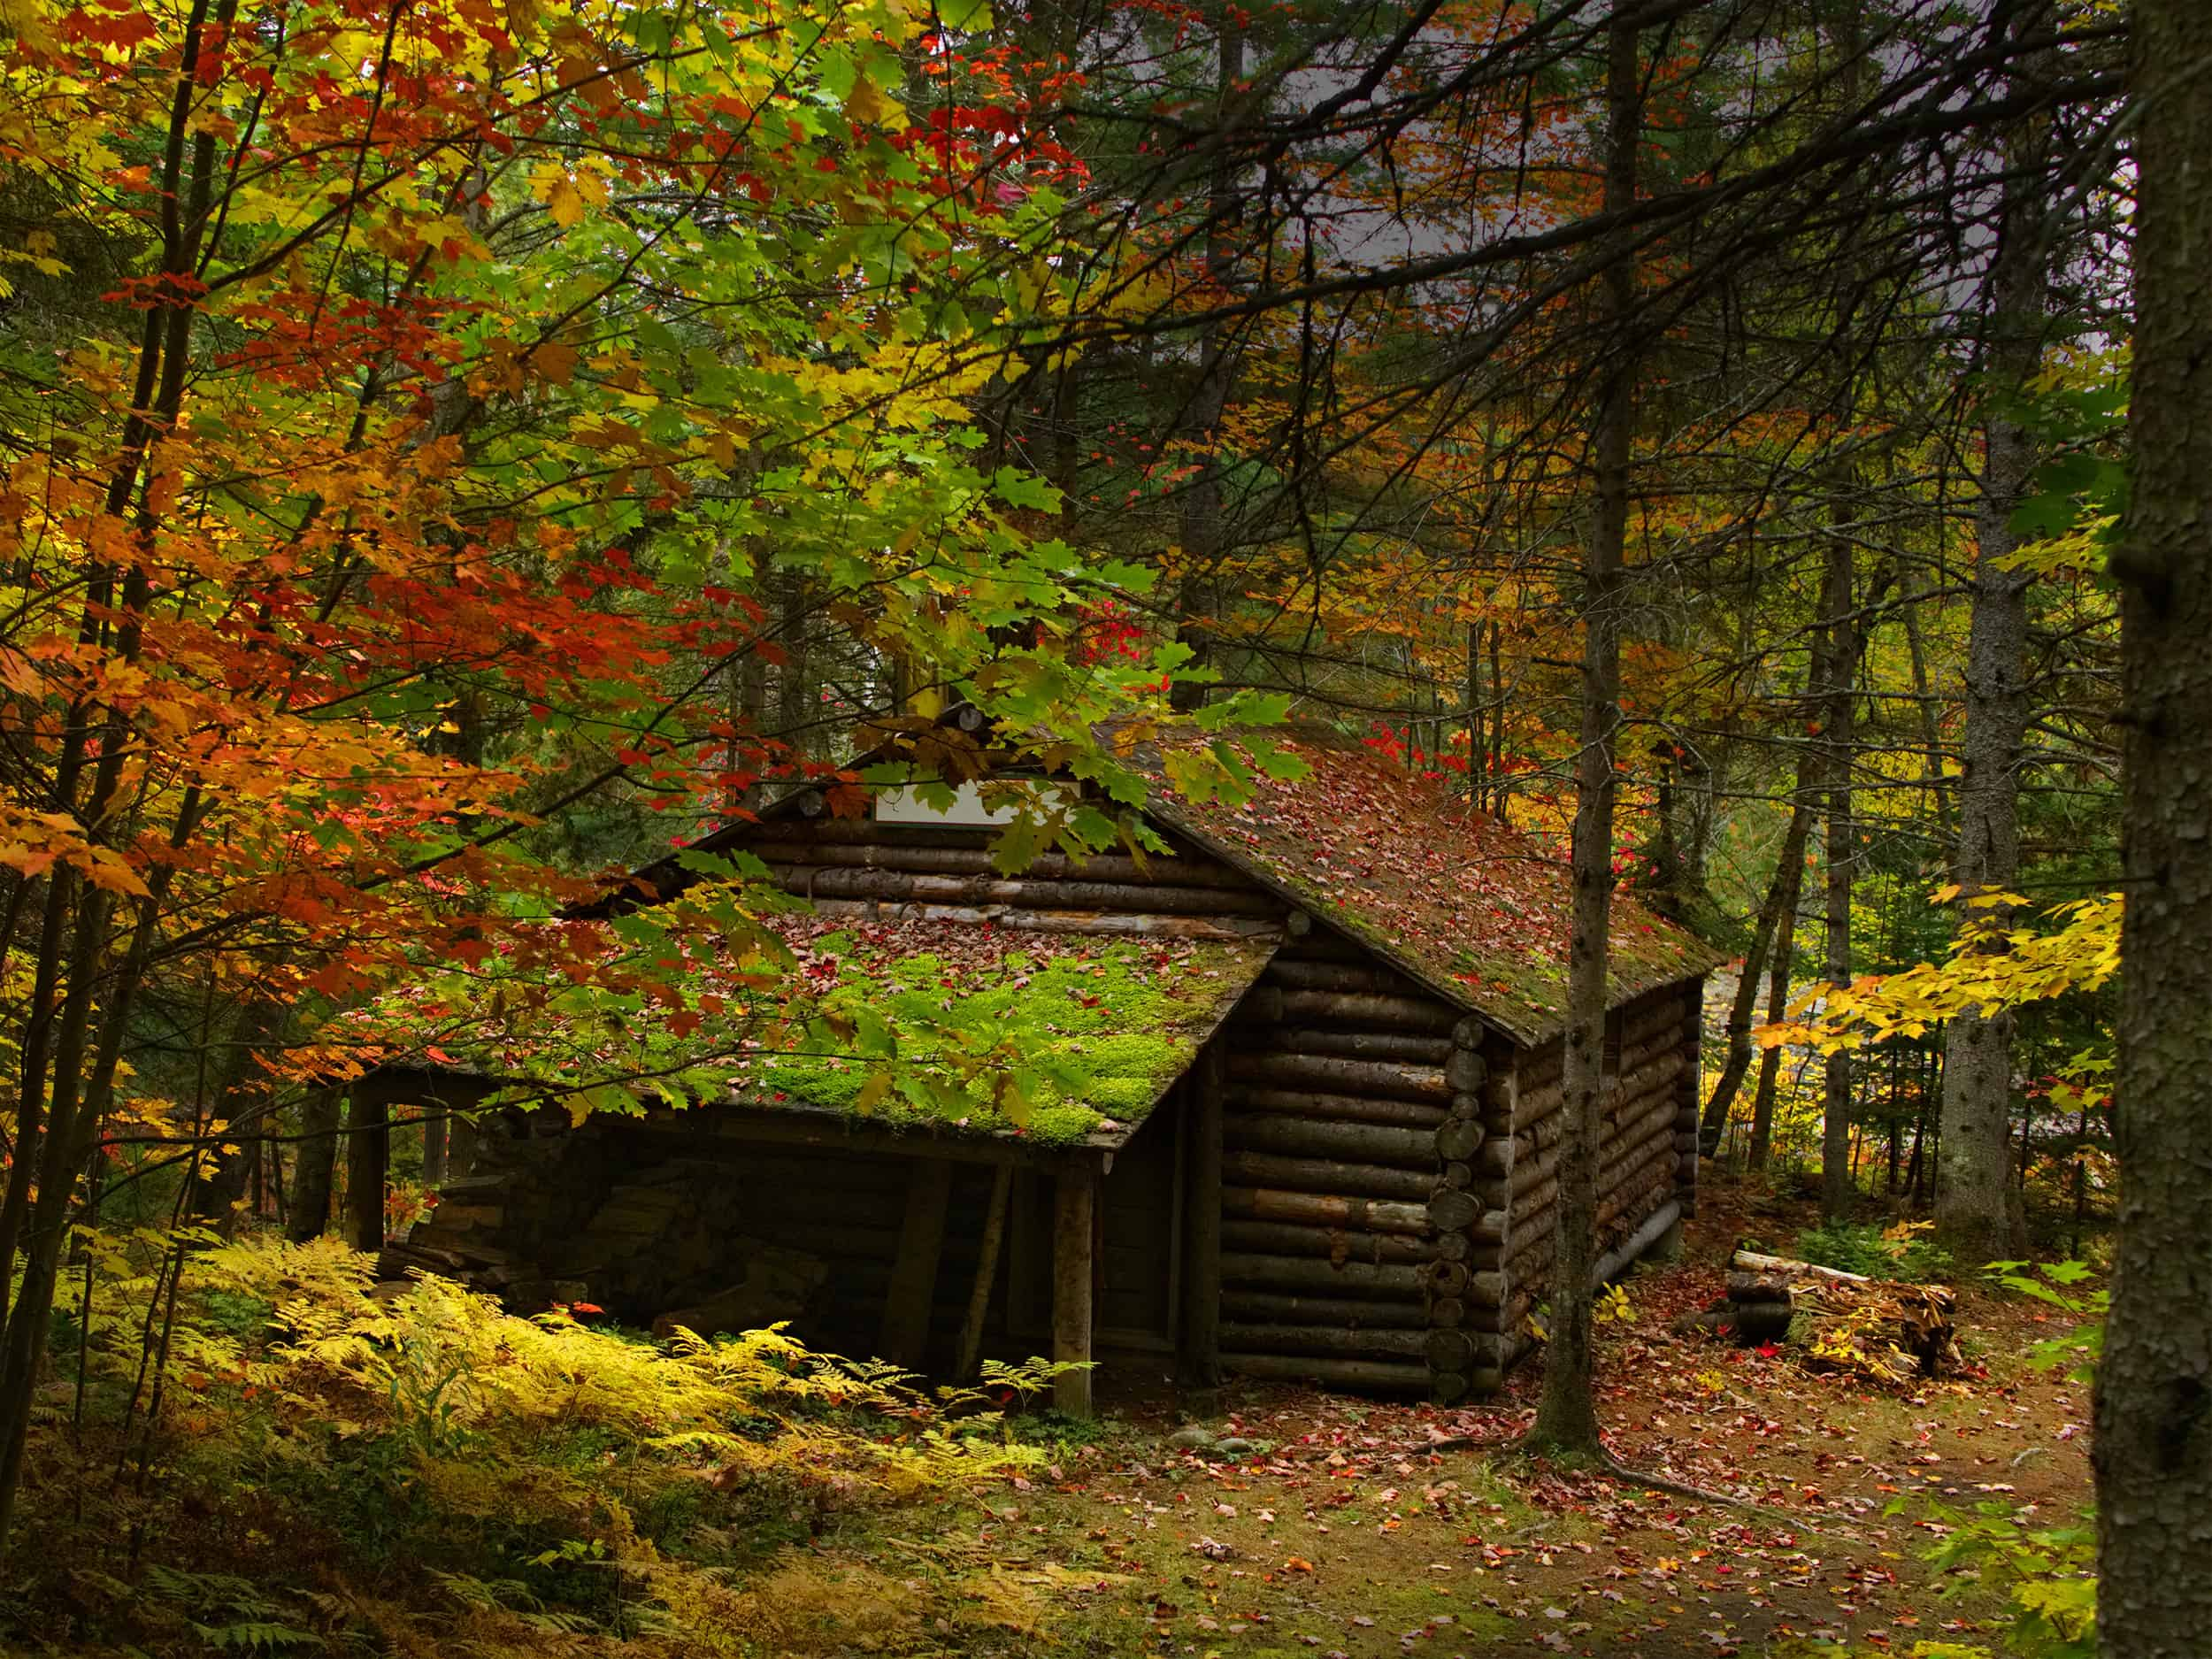 Fall Themed Wallpaper 20 Cozy Cabins For An Autumn Escape In Manitoba Explore